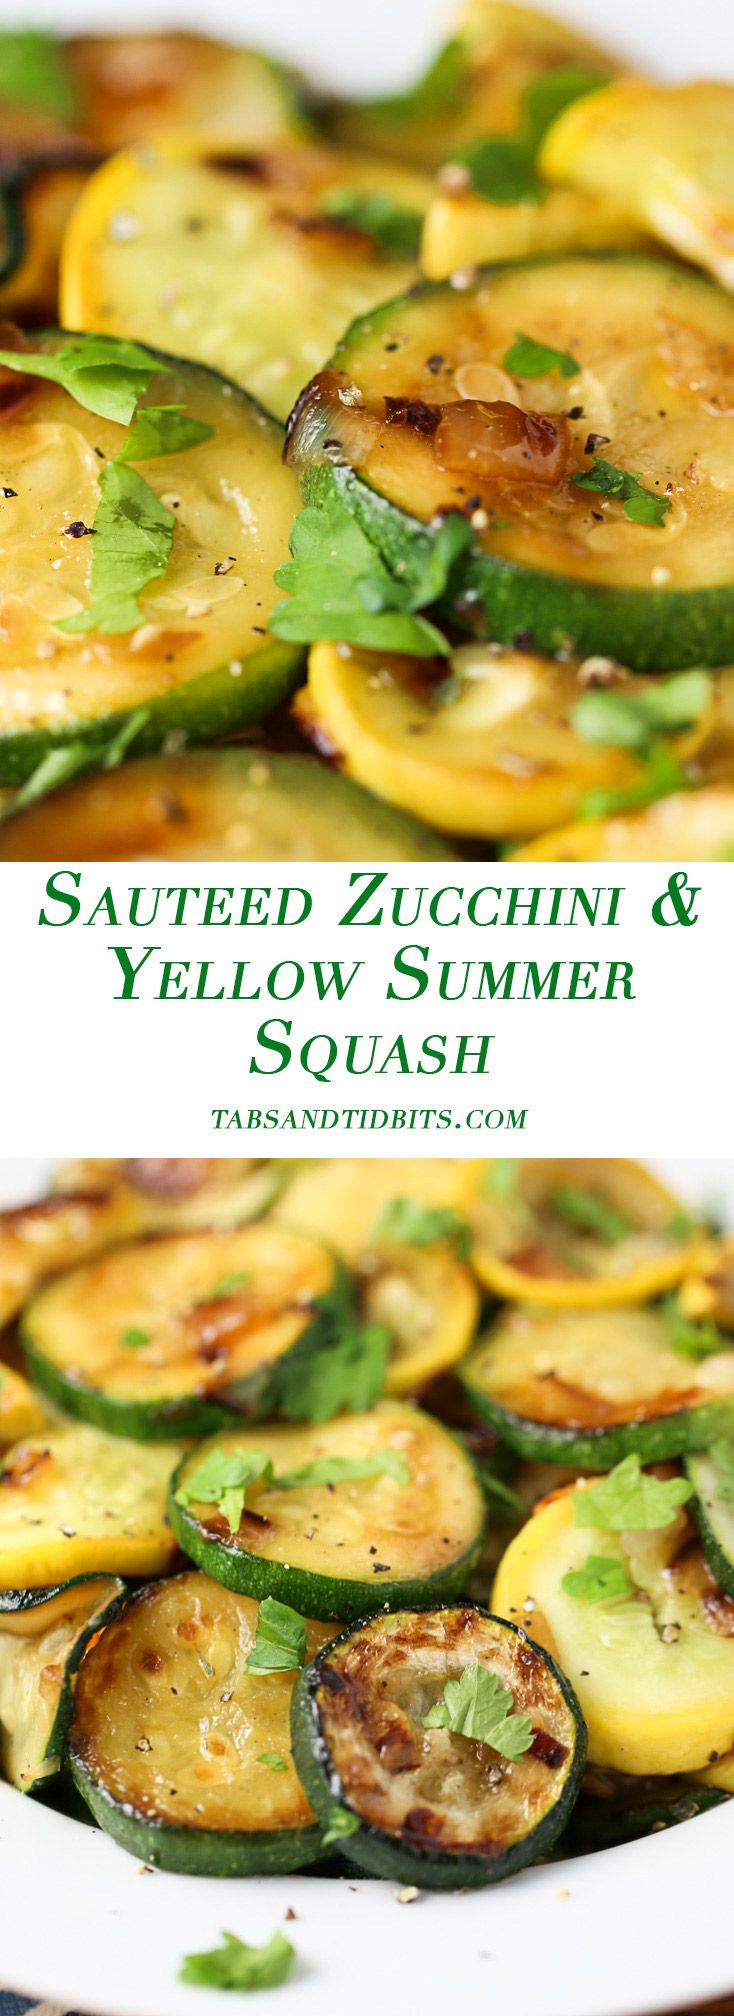 Sauteed Zucchini & Yellow Summer Squash - Sauteed squash that is full of flavor and browned texture due to salting.